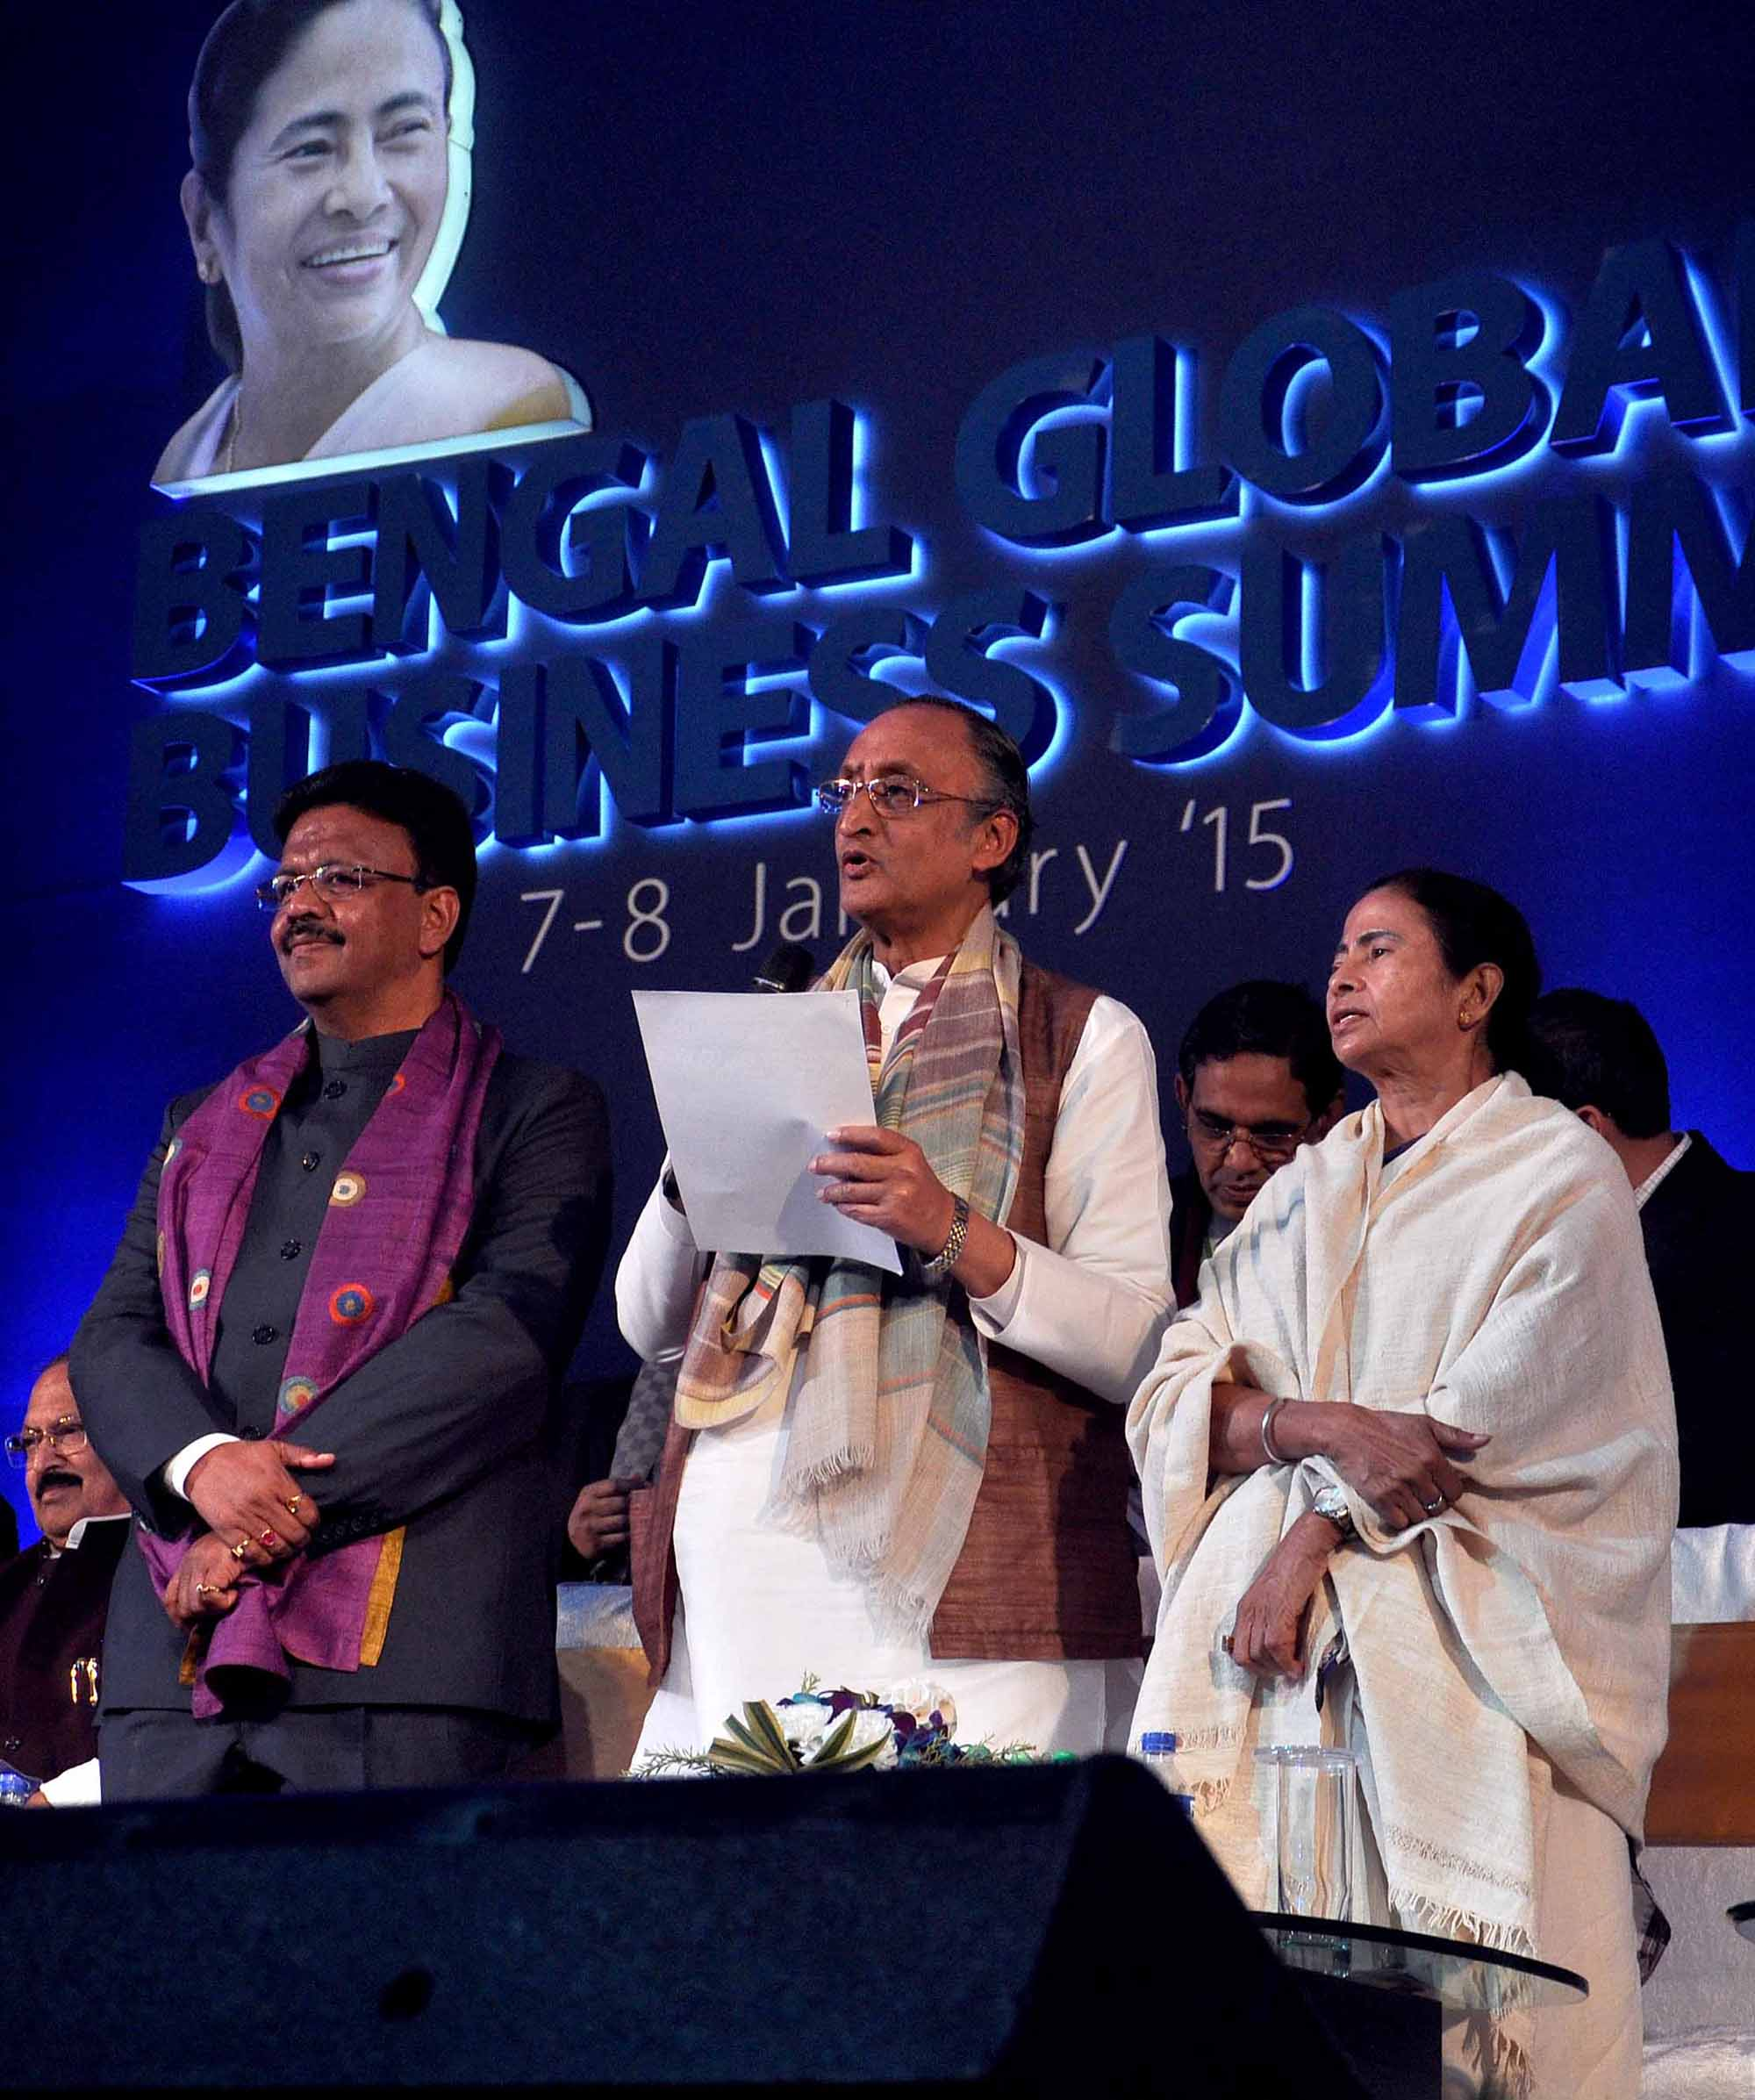 Mamata-Amit-Firad-in-Bengal-Global-Business-Summit-at-Salt-lake-stadium-area-1